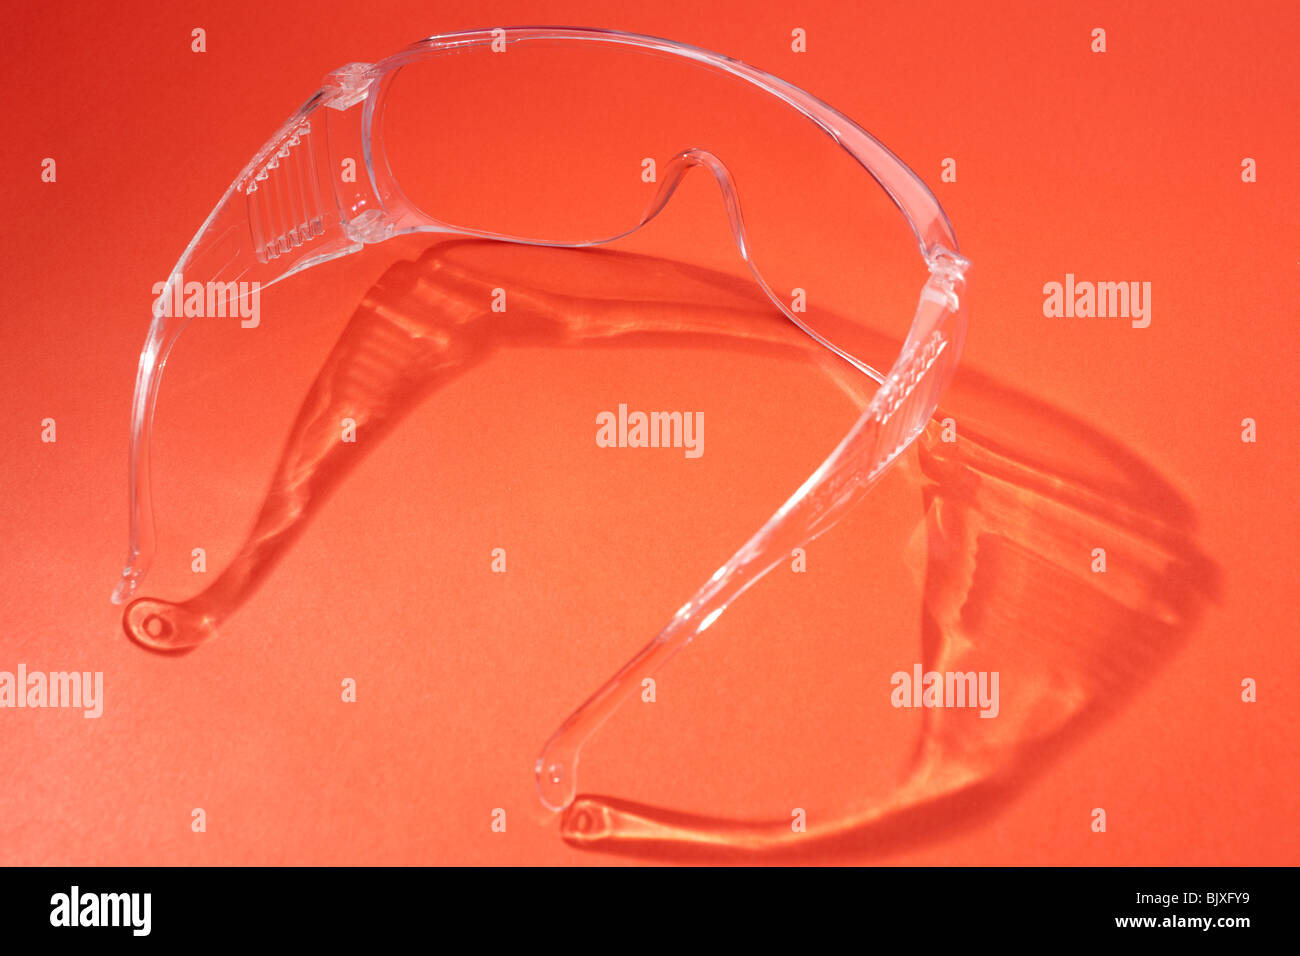 Pair of Safety spectacles - Stock Image